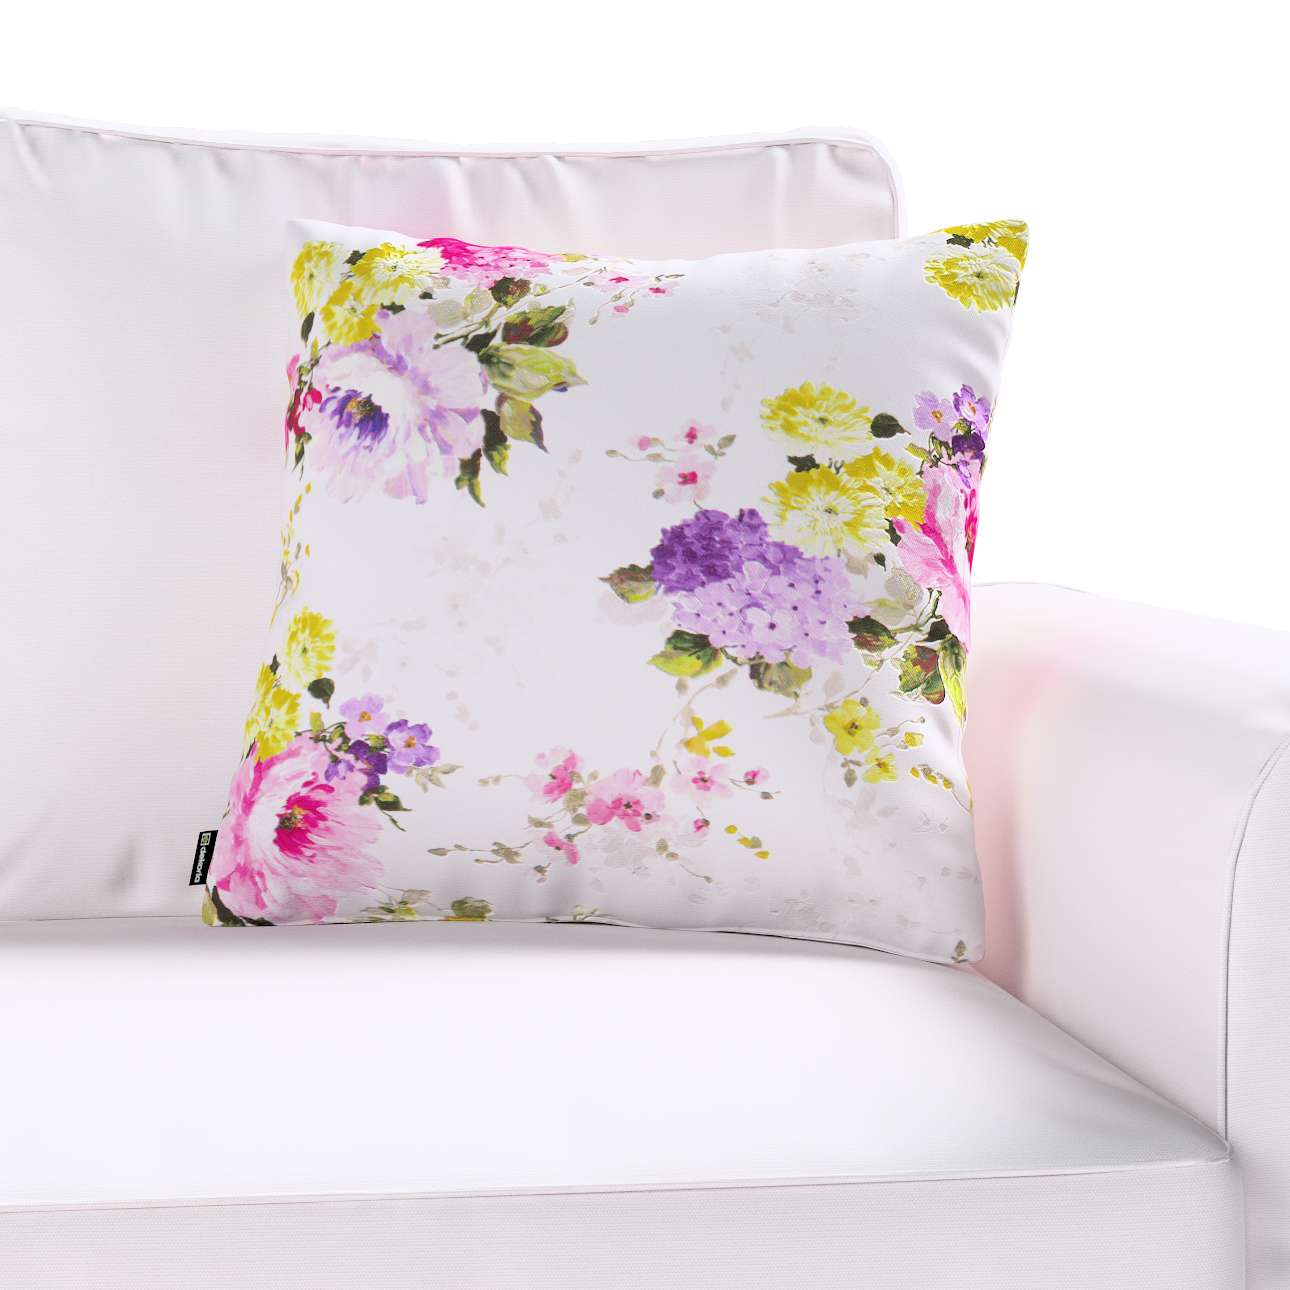 Kinga cushion cover 43 x 43 cm (17 x 17 inch) in collection Monet, fabric: 140-00